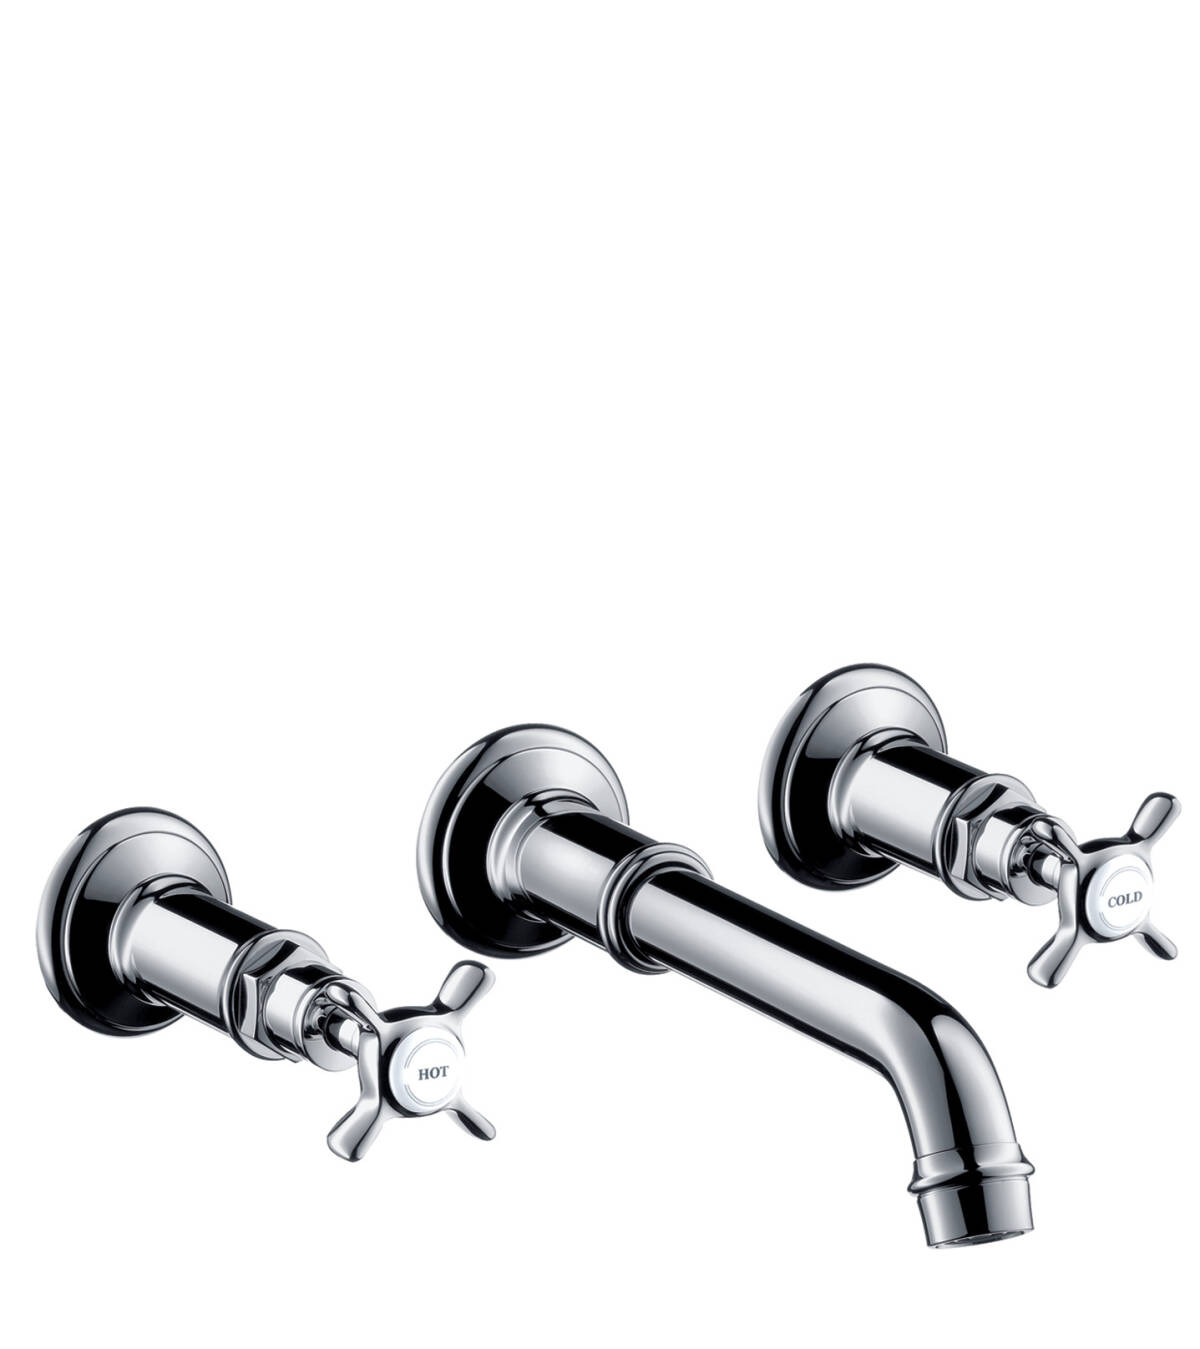 3-hole basin mixer for concealed installation wall-mounted with spout 165 - 225 mm and cross handles, Chrome, 16532000